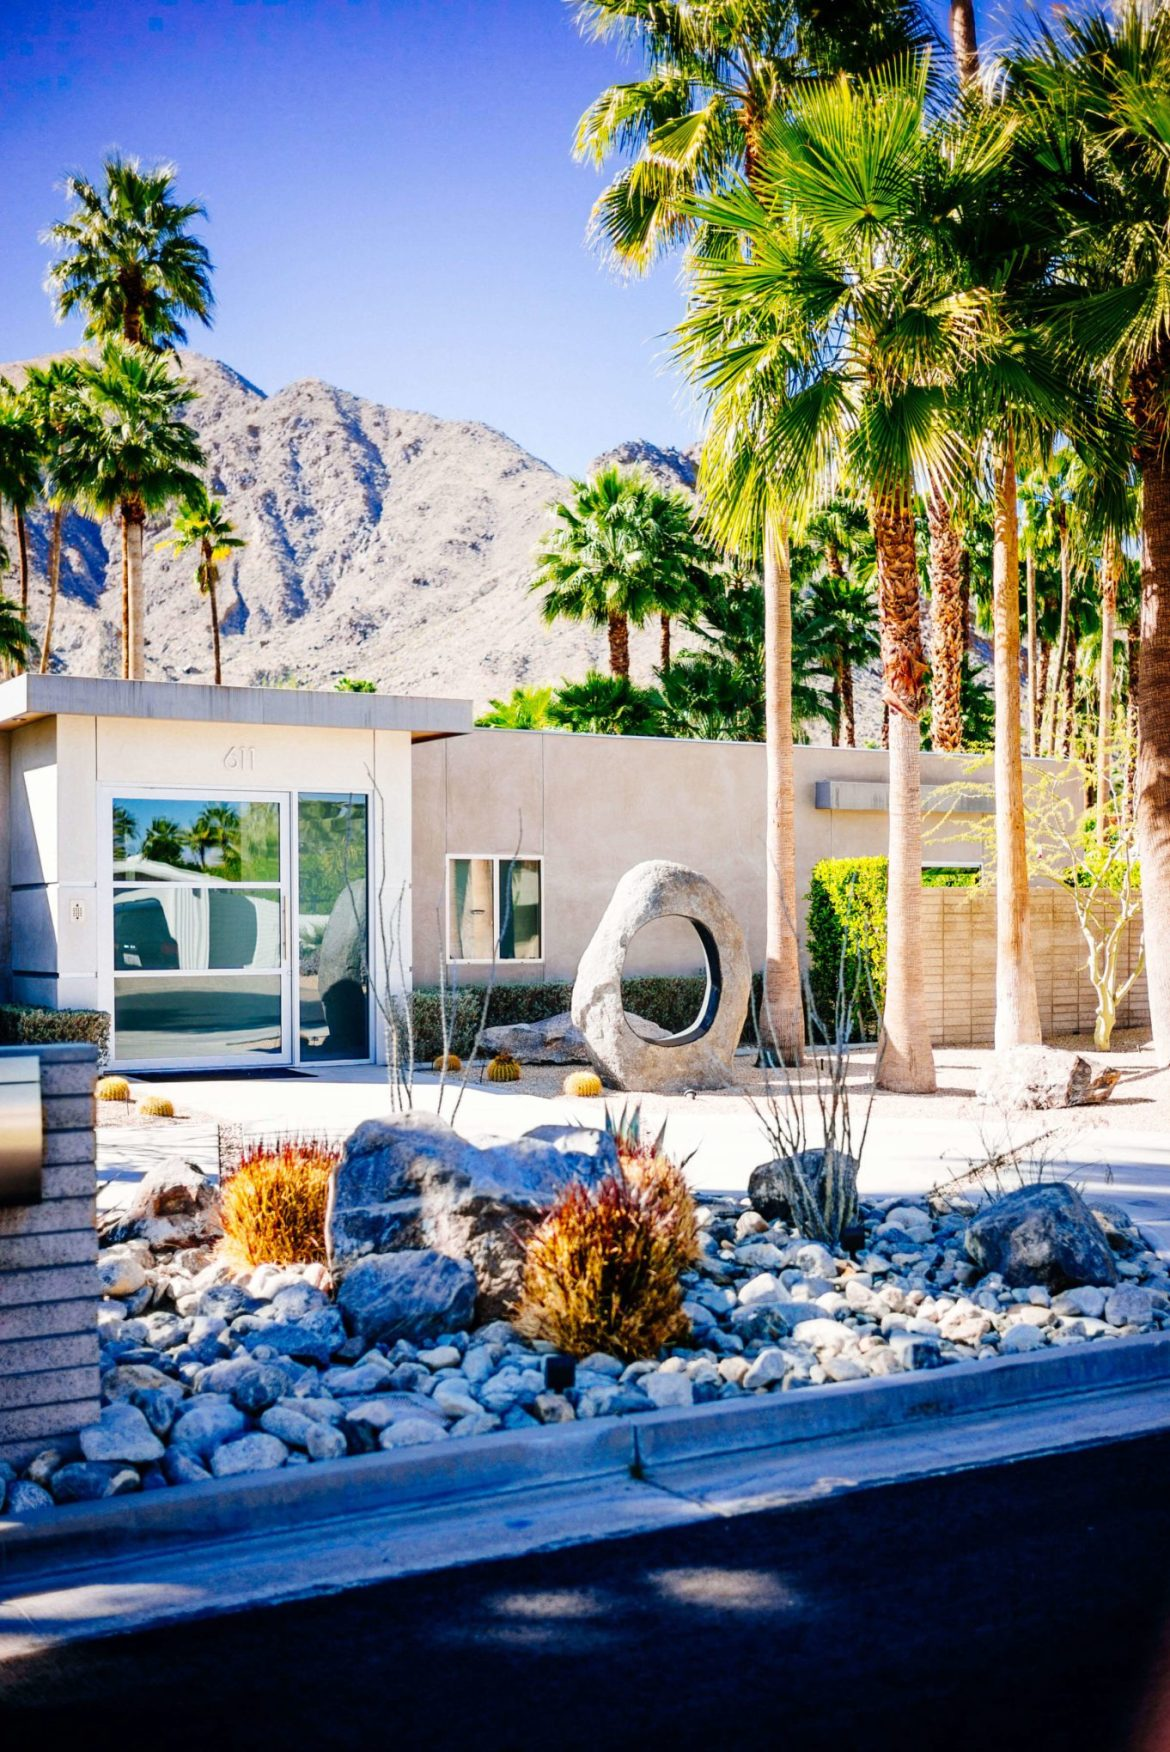 Catcus garden : Tour the beautiful Mid Century Homes in Palm Springs, The Taste Edit